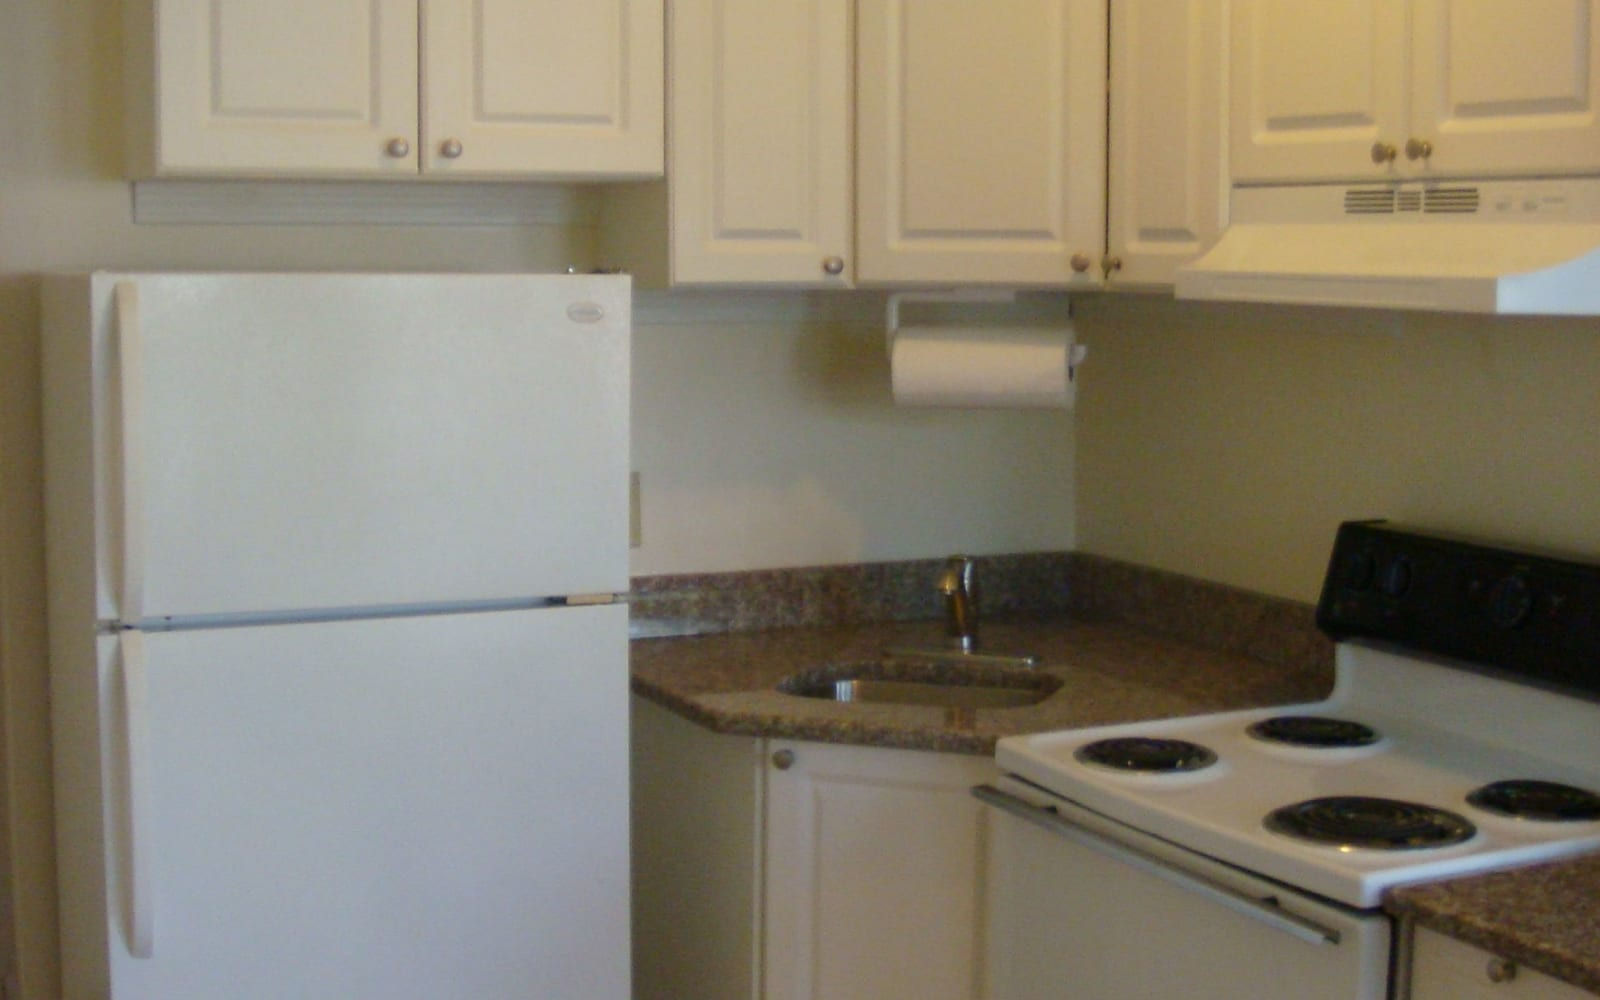 Stove and refrigerator in kitchen at 400 Atlantic in Bridgeport, Connecticut